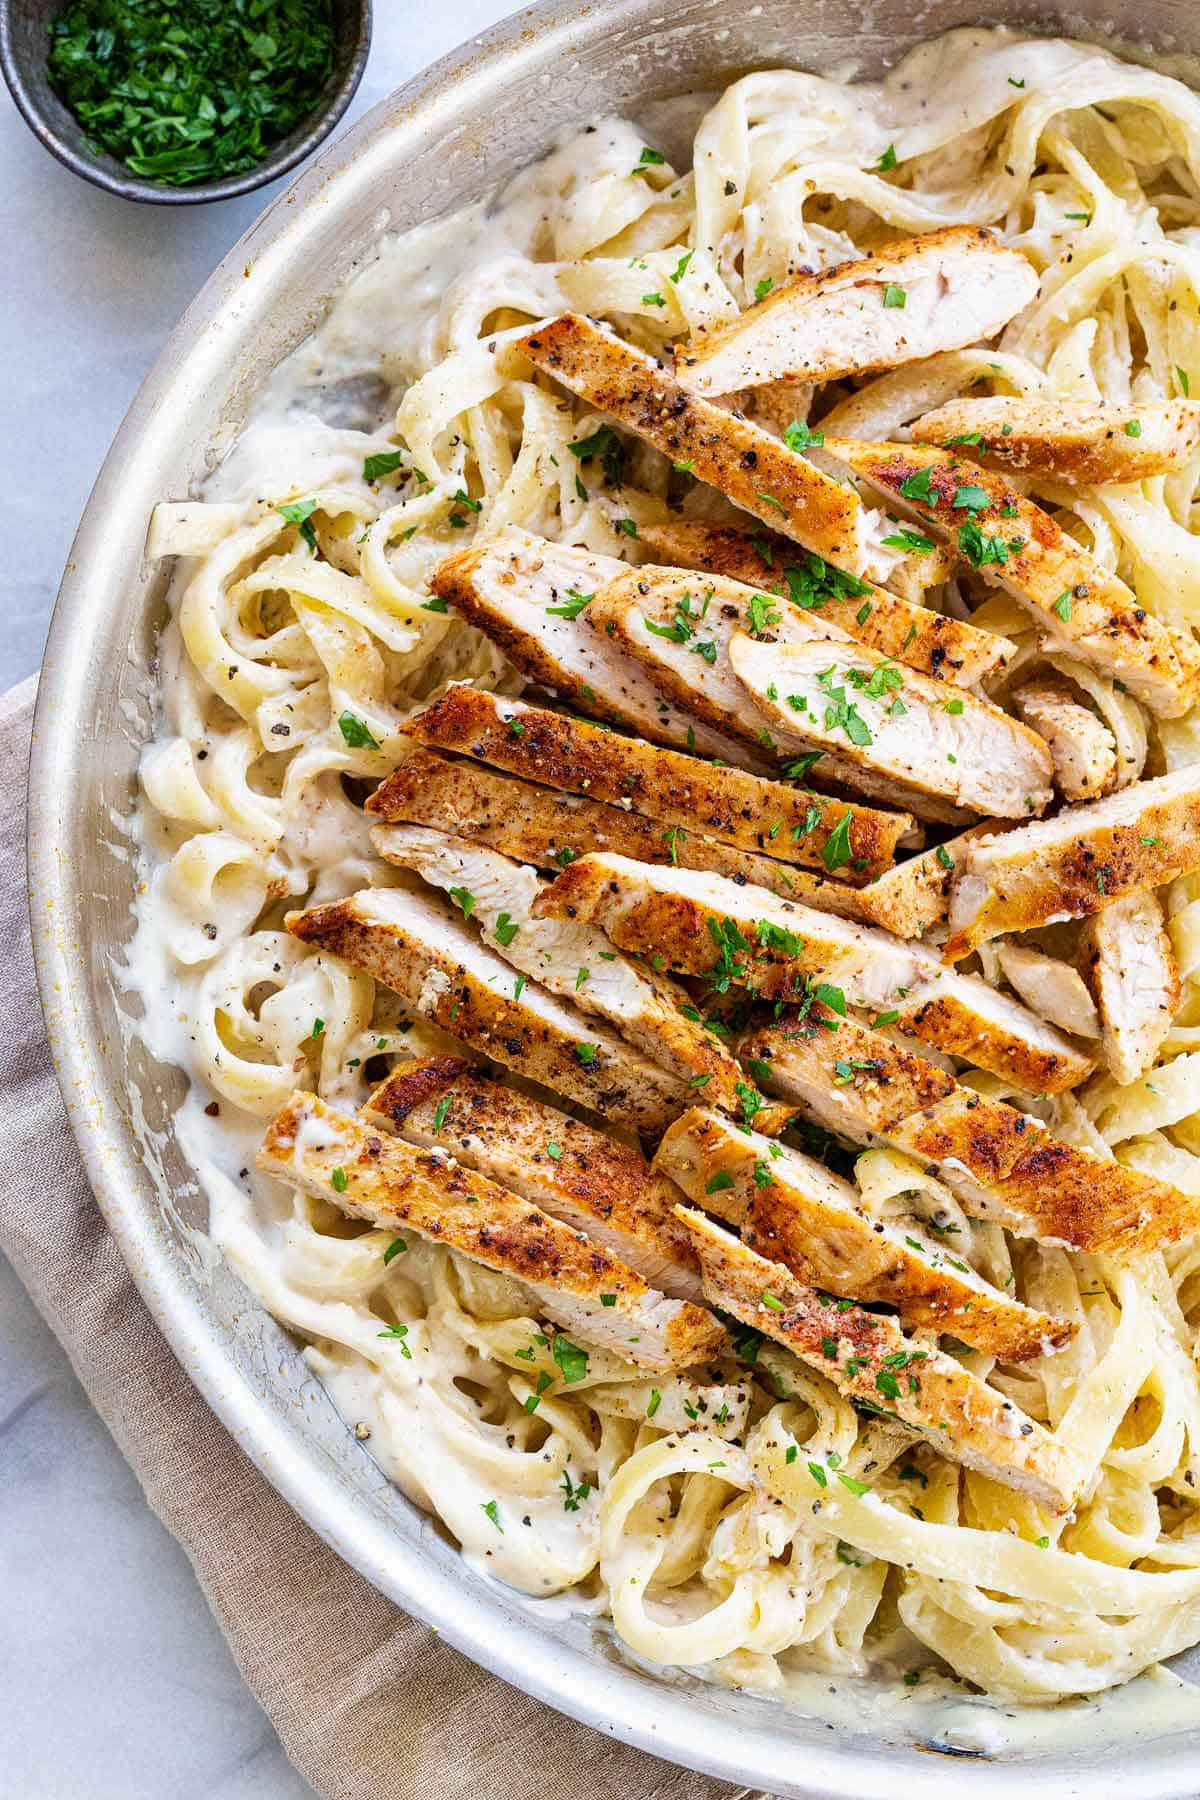 Chicken alfredo recipe with heavy cream, garlic, parmesan cheese, fettuccine noodles, and tender chicken breast for a classic Italian meal. #chickealfredo #italian #comfortfood